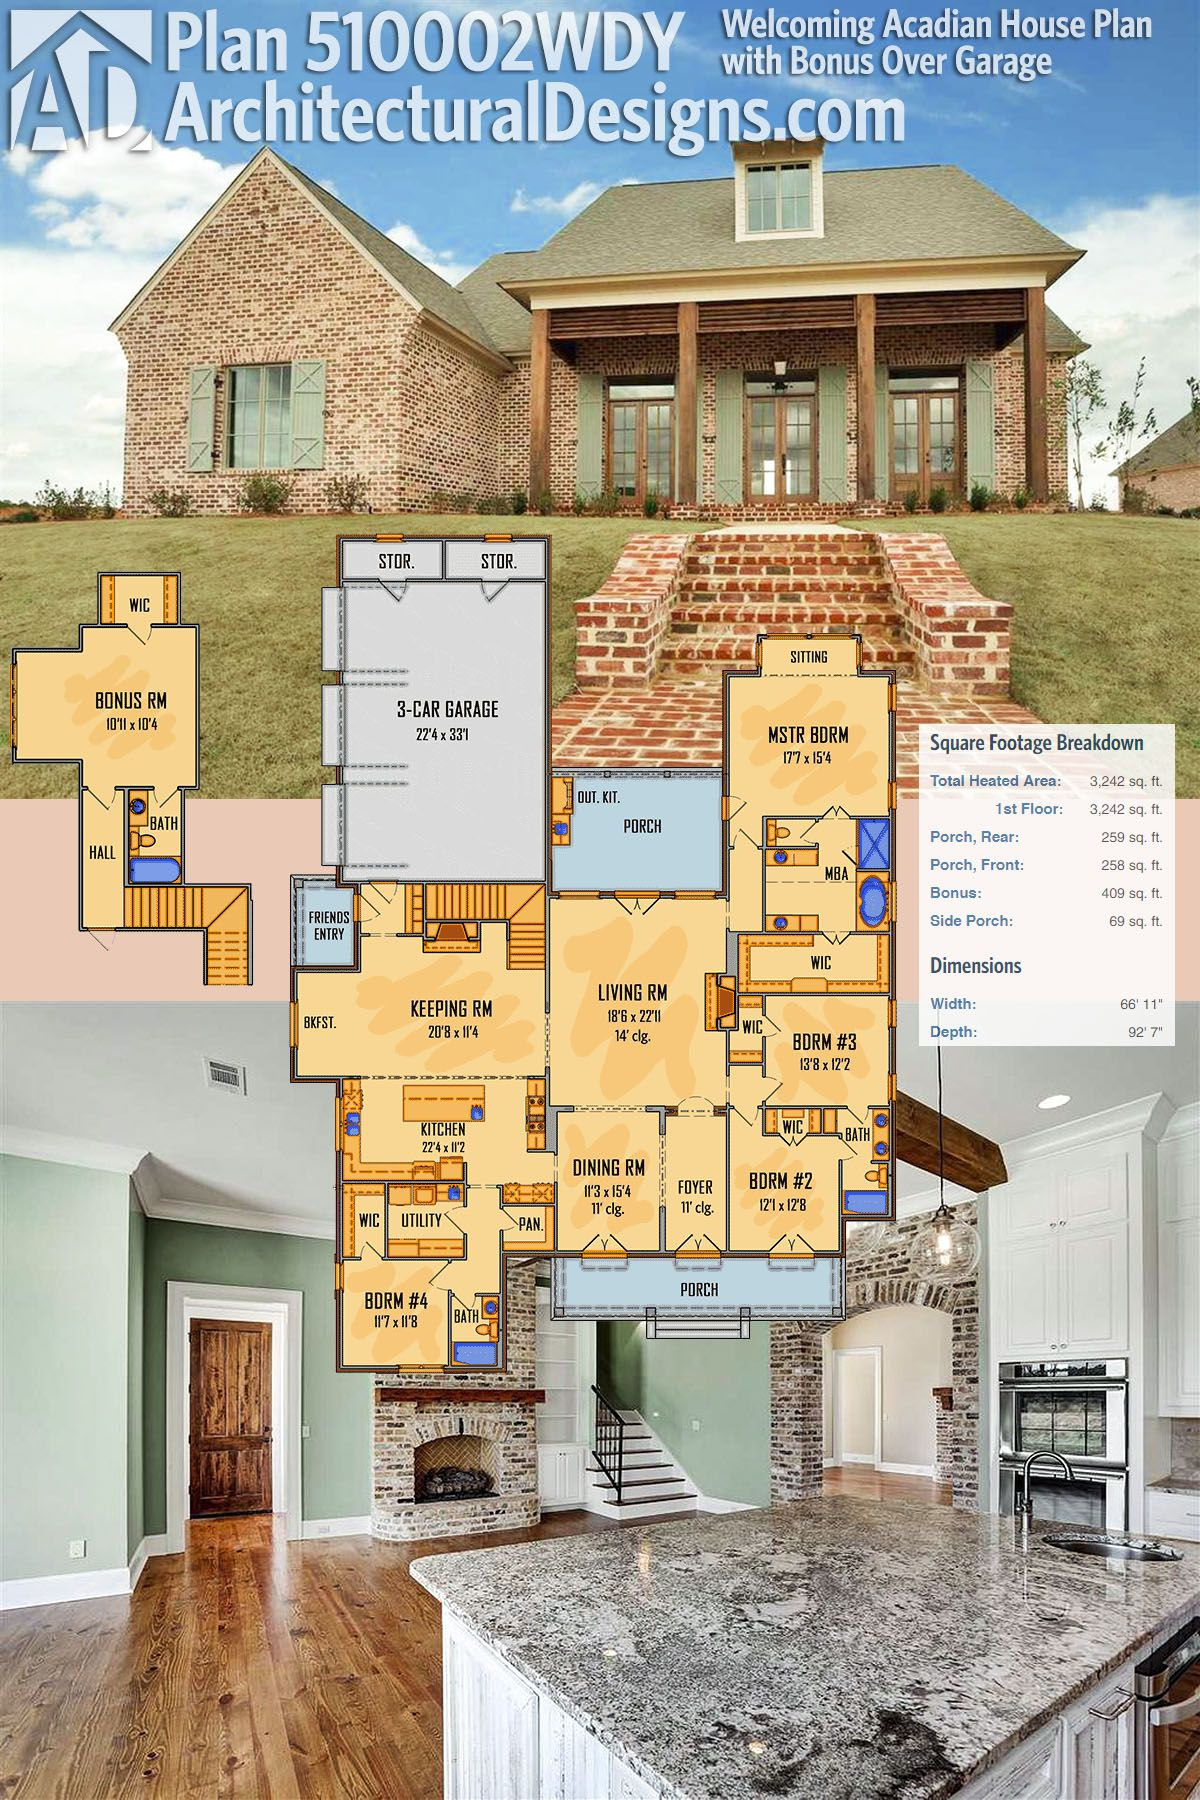 Architectural Designs Acadian House Plan 510002WDY has